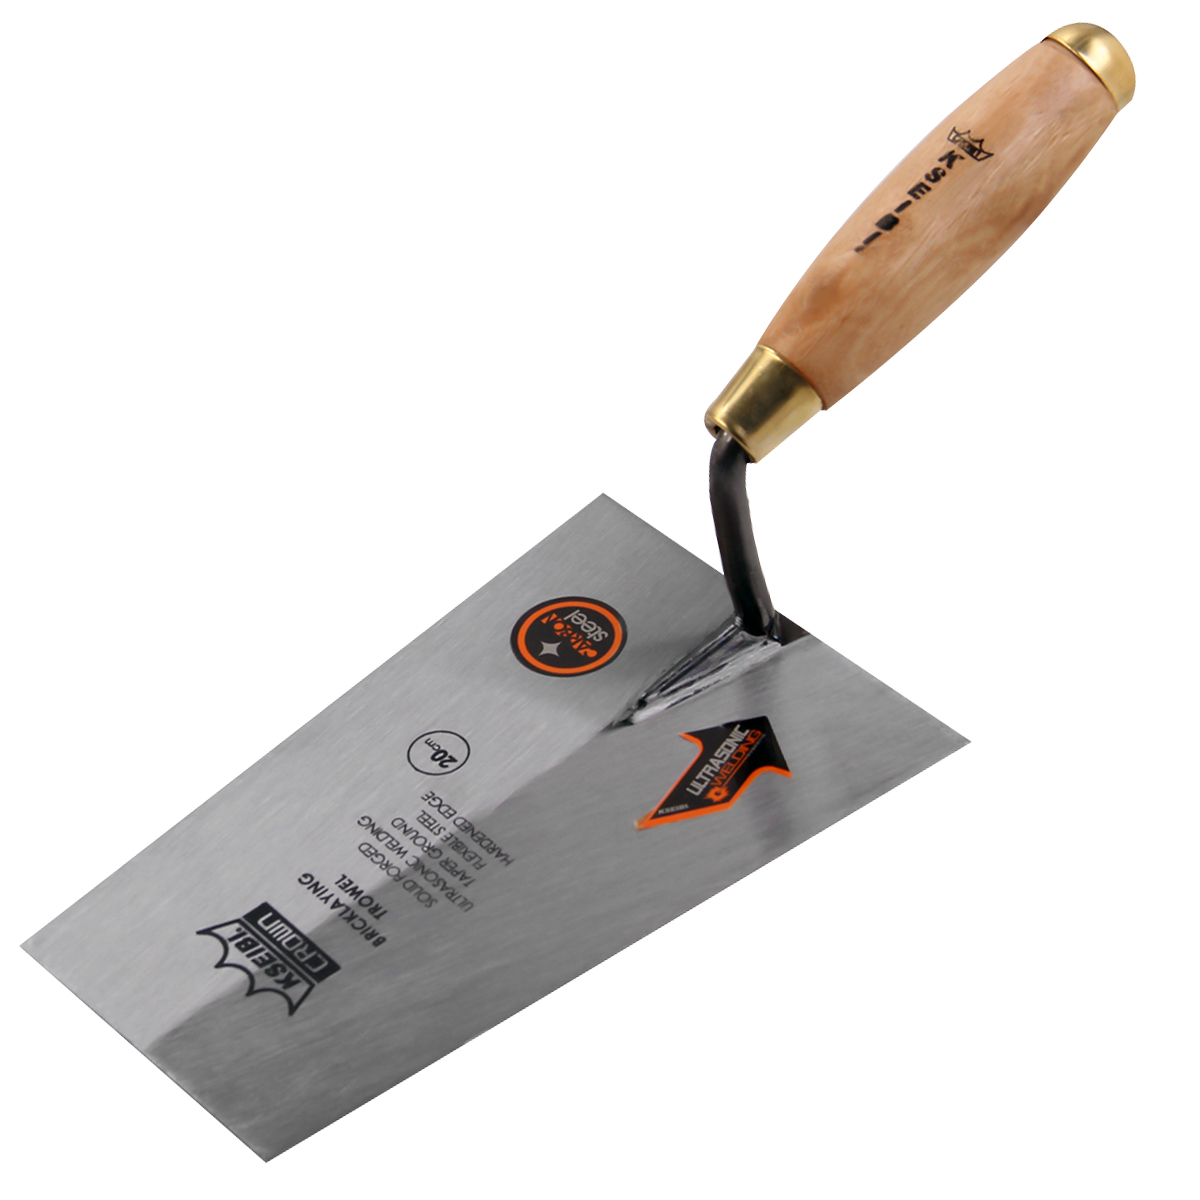 Paint Tools Bricklaying High Gauging Tip Square Putty Knife Trowel Remover Drywall Grade Work Trowel Parts Steel KSEIBI Set